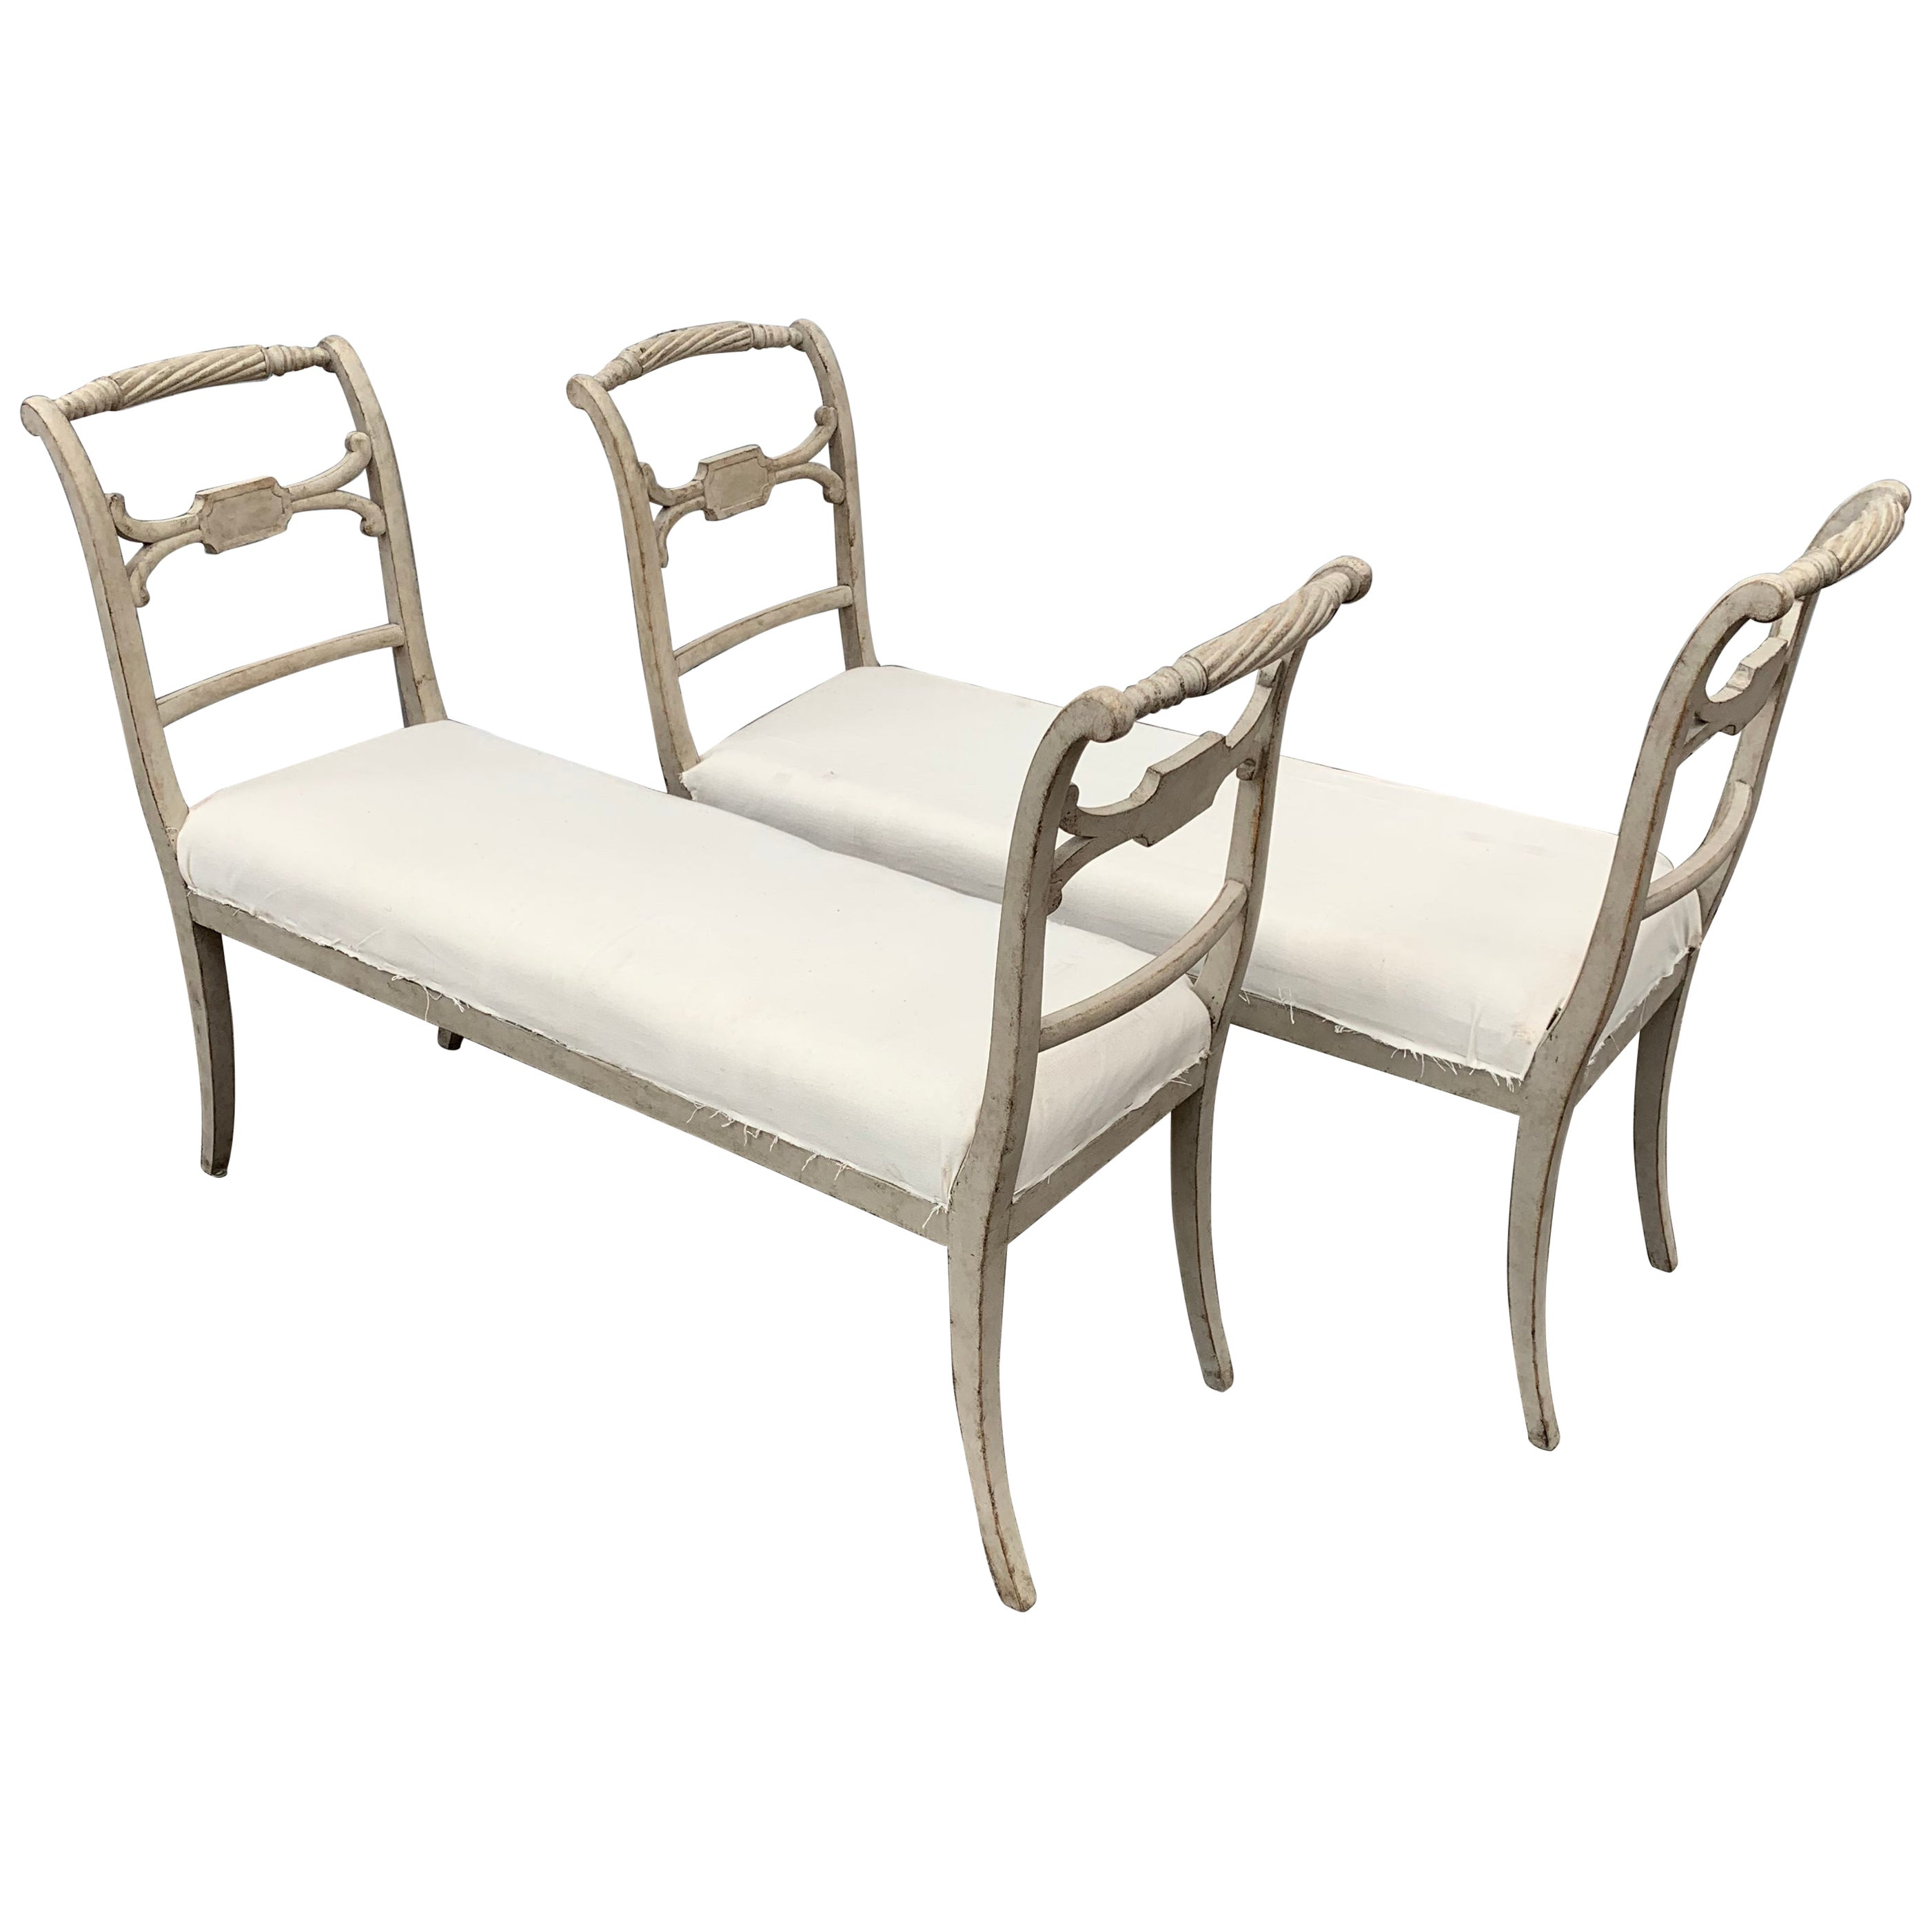 Pair of Swedish Gustavian Style Grey Painted Benches or Settees